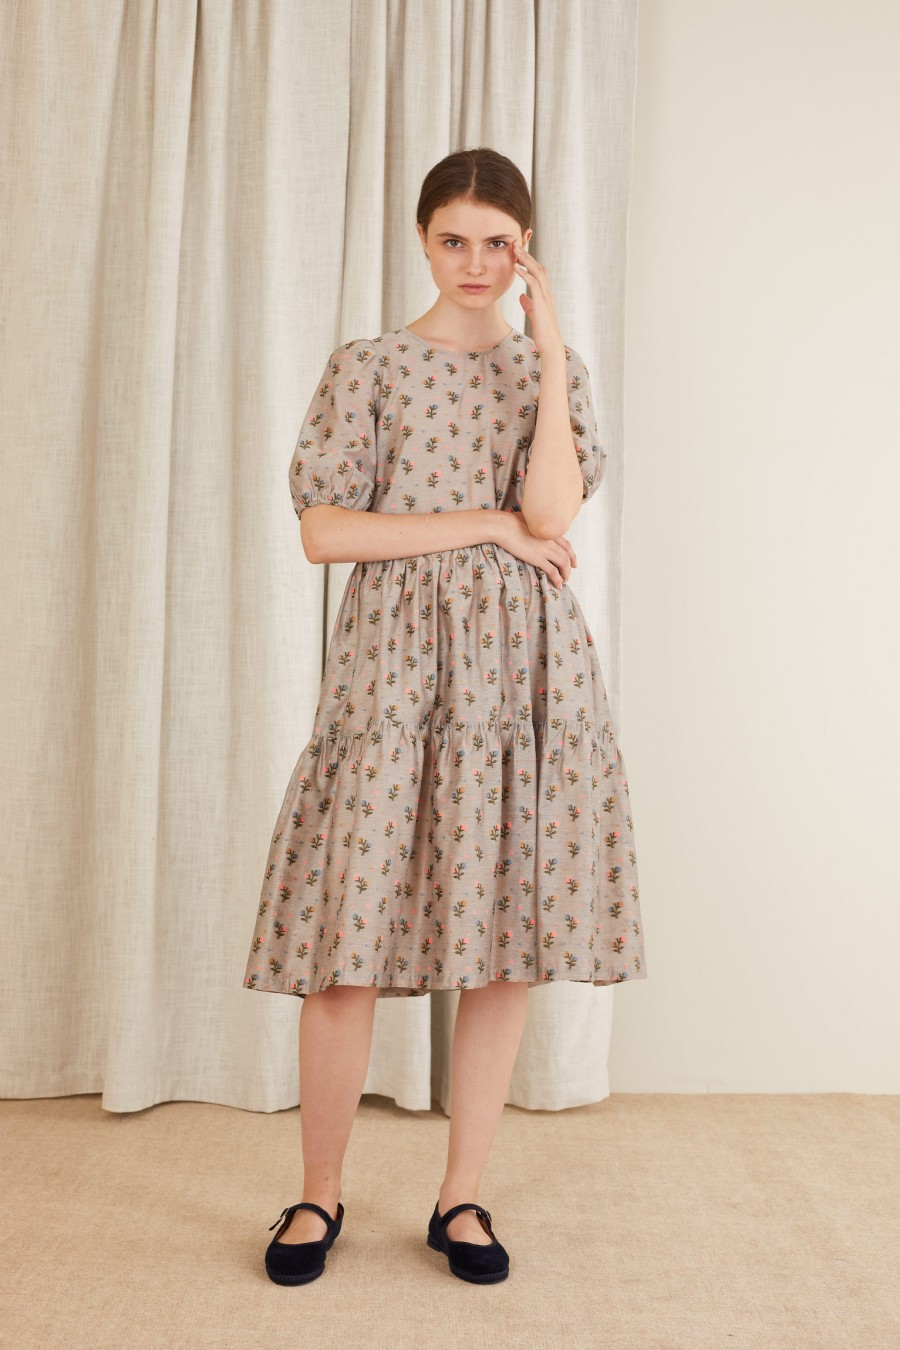 stylish dress with little flowers